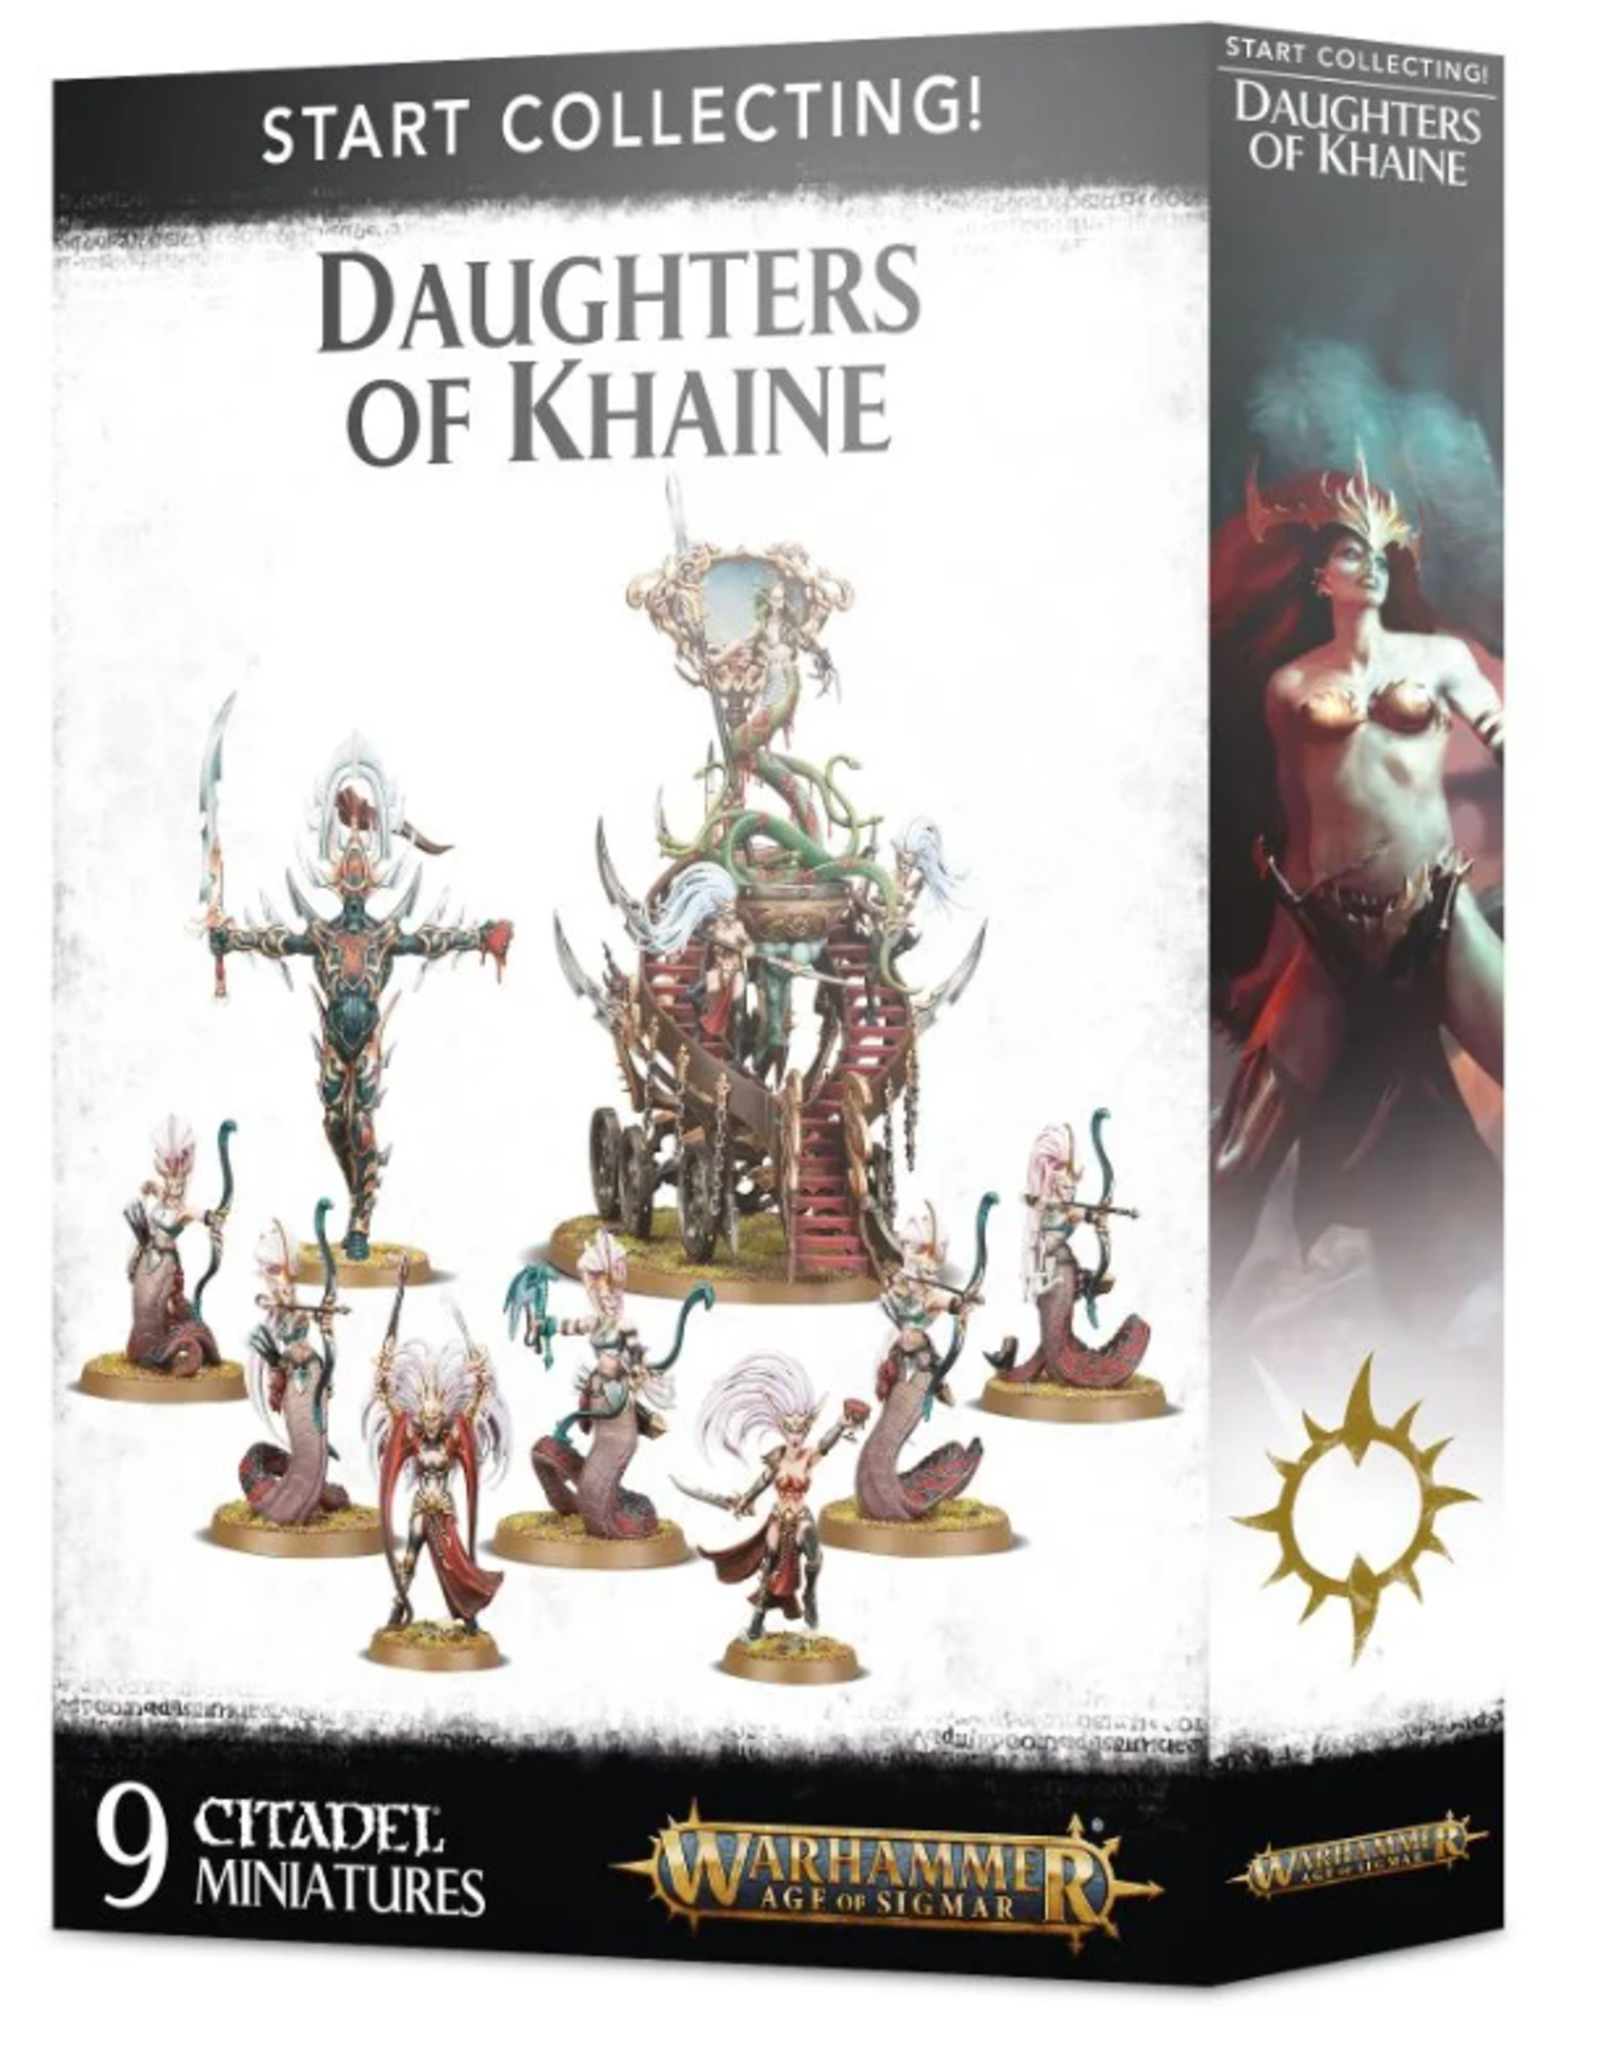 Games Workshop Warhammer Age of Sigmar: Start Collecting! Daughters of Khaine